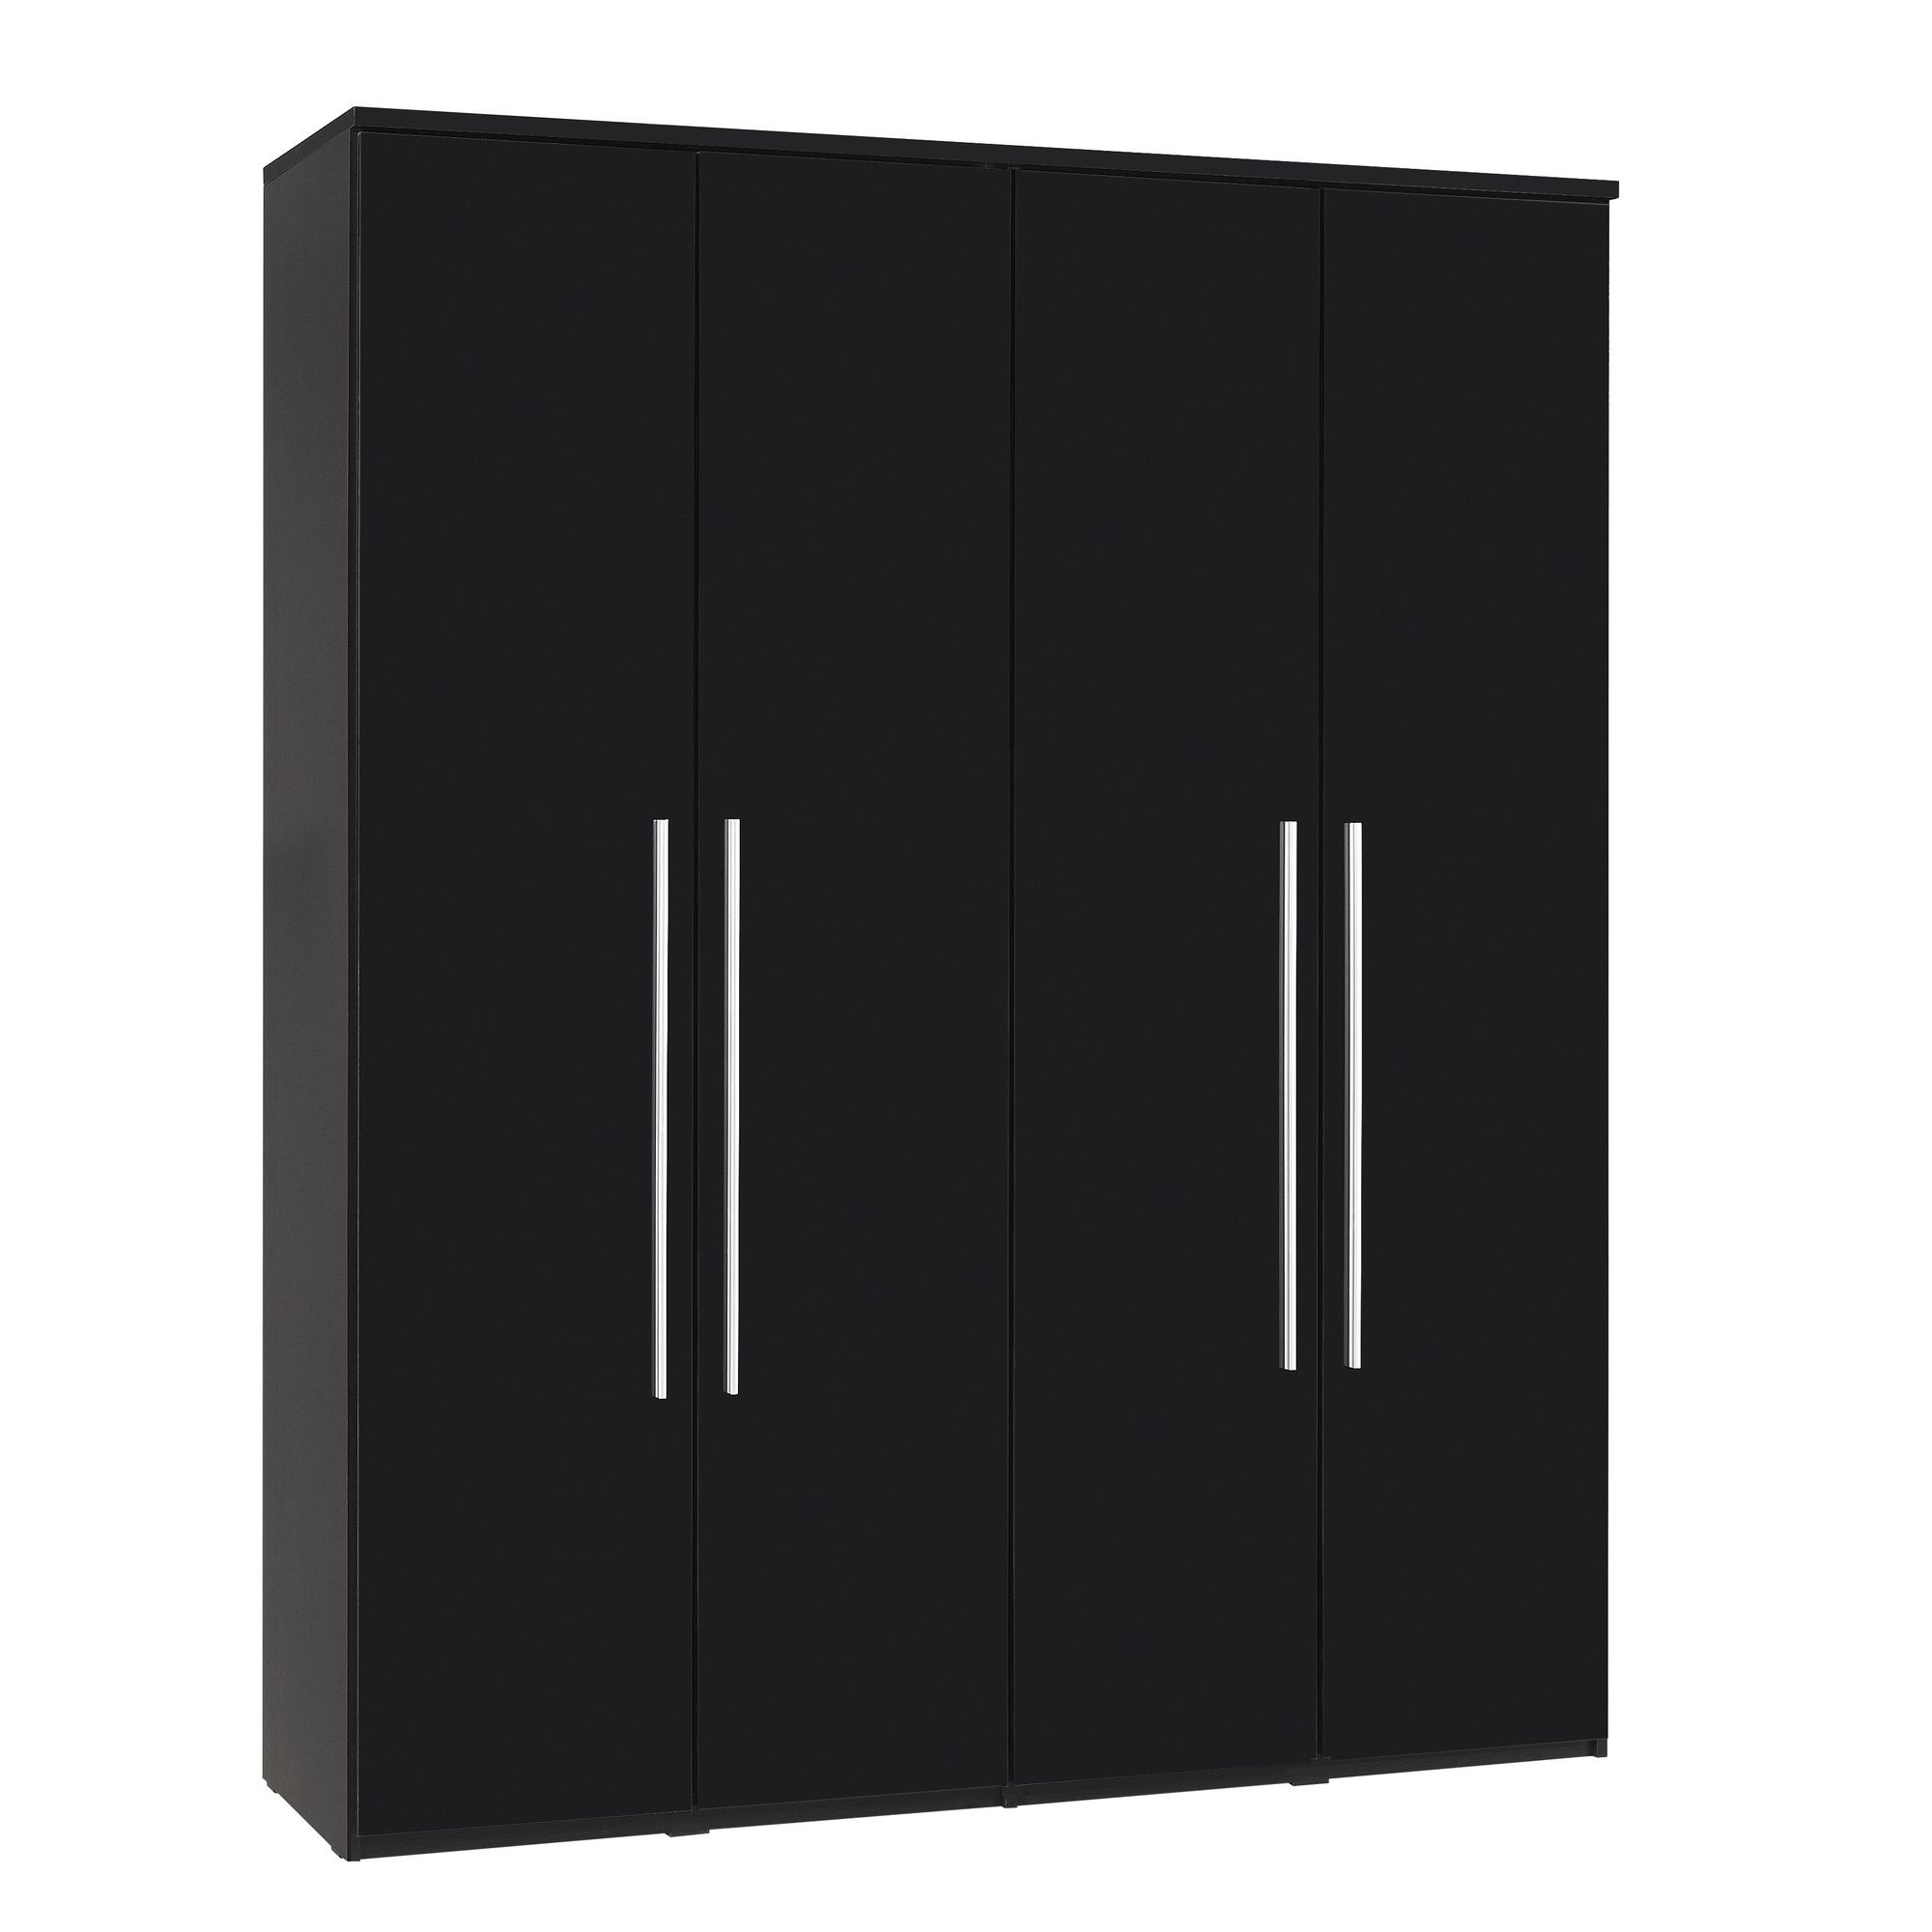 Urbane Designs Romain Four Door Wardrobe in High Gloss Black at Tesco Direct